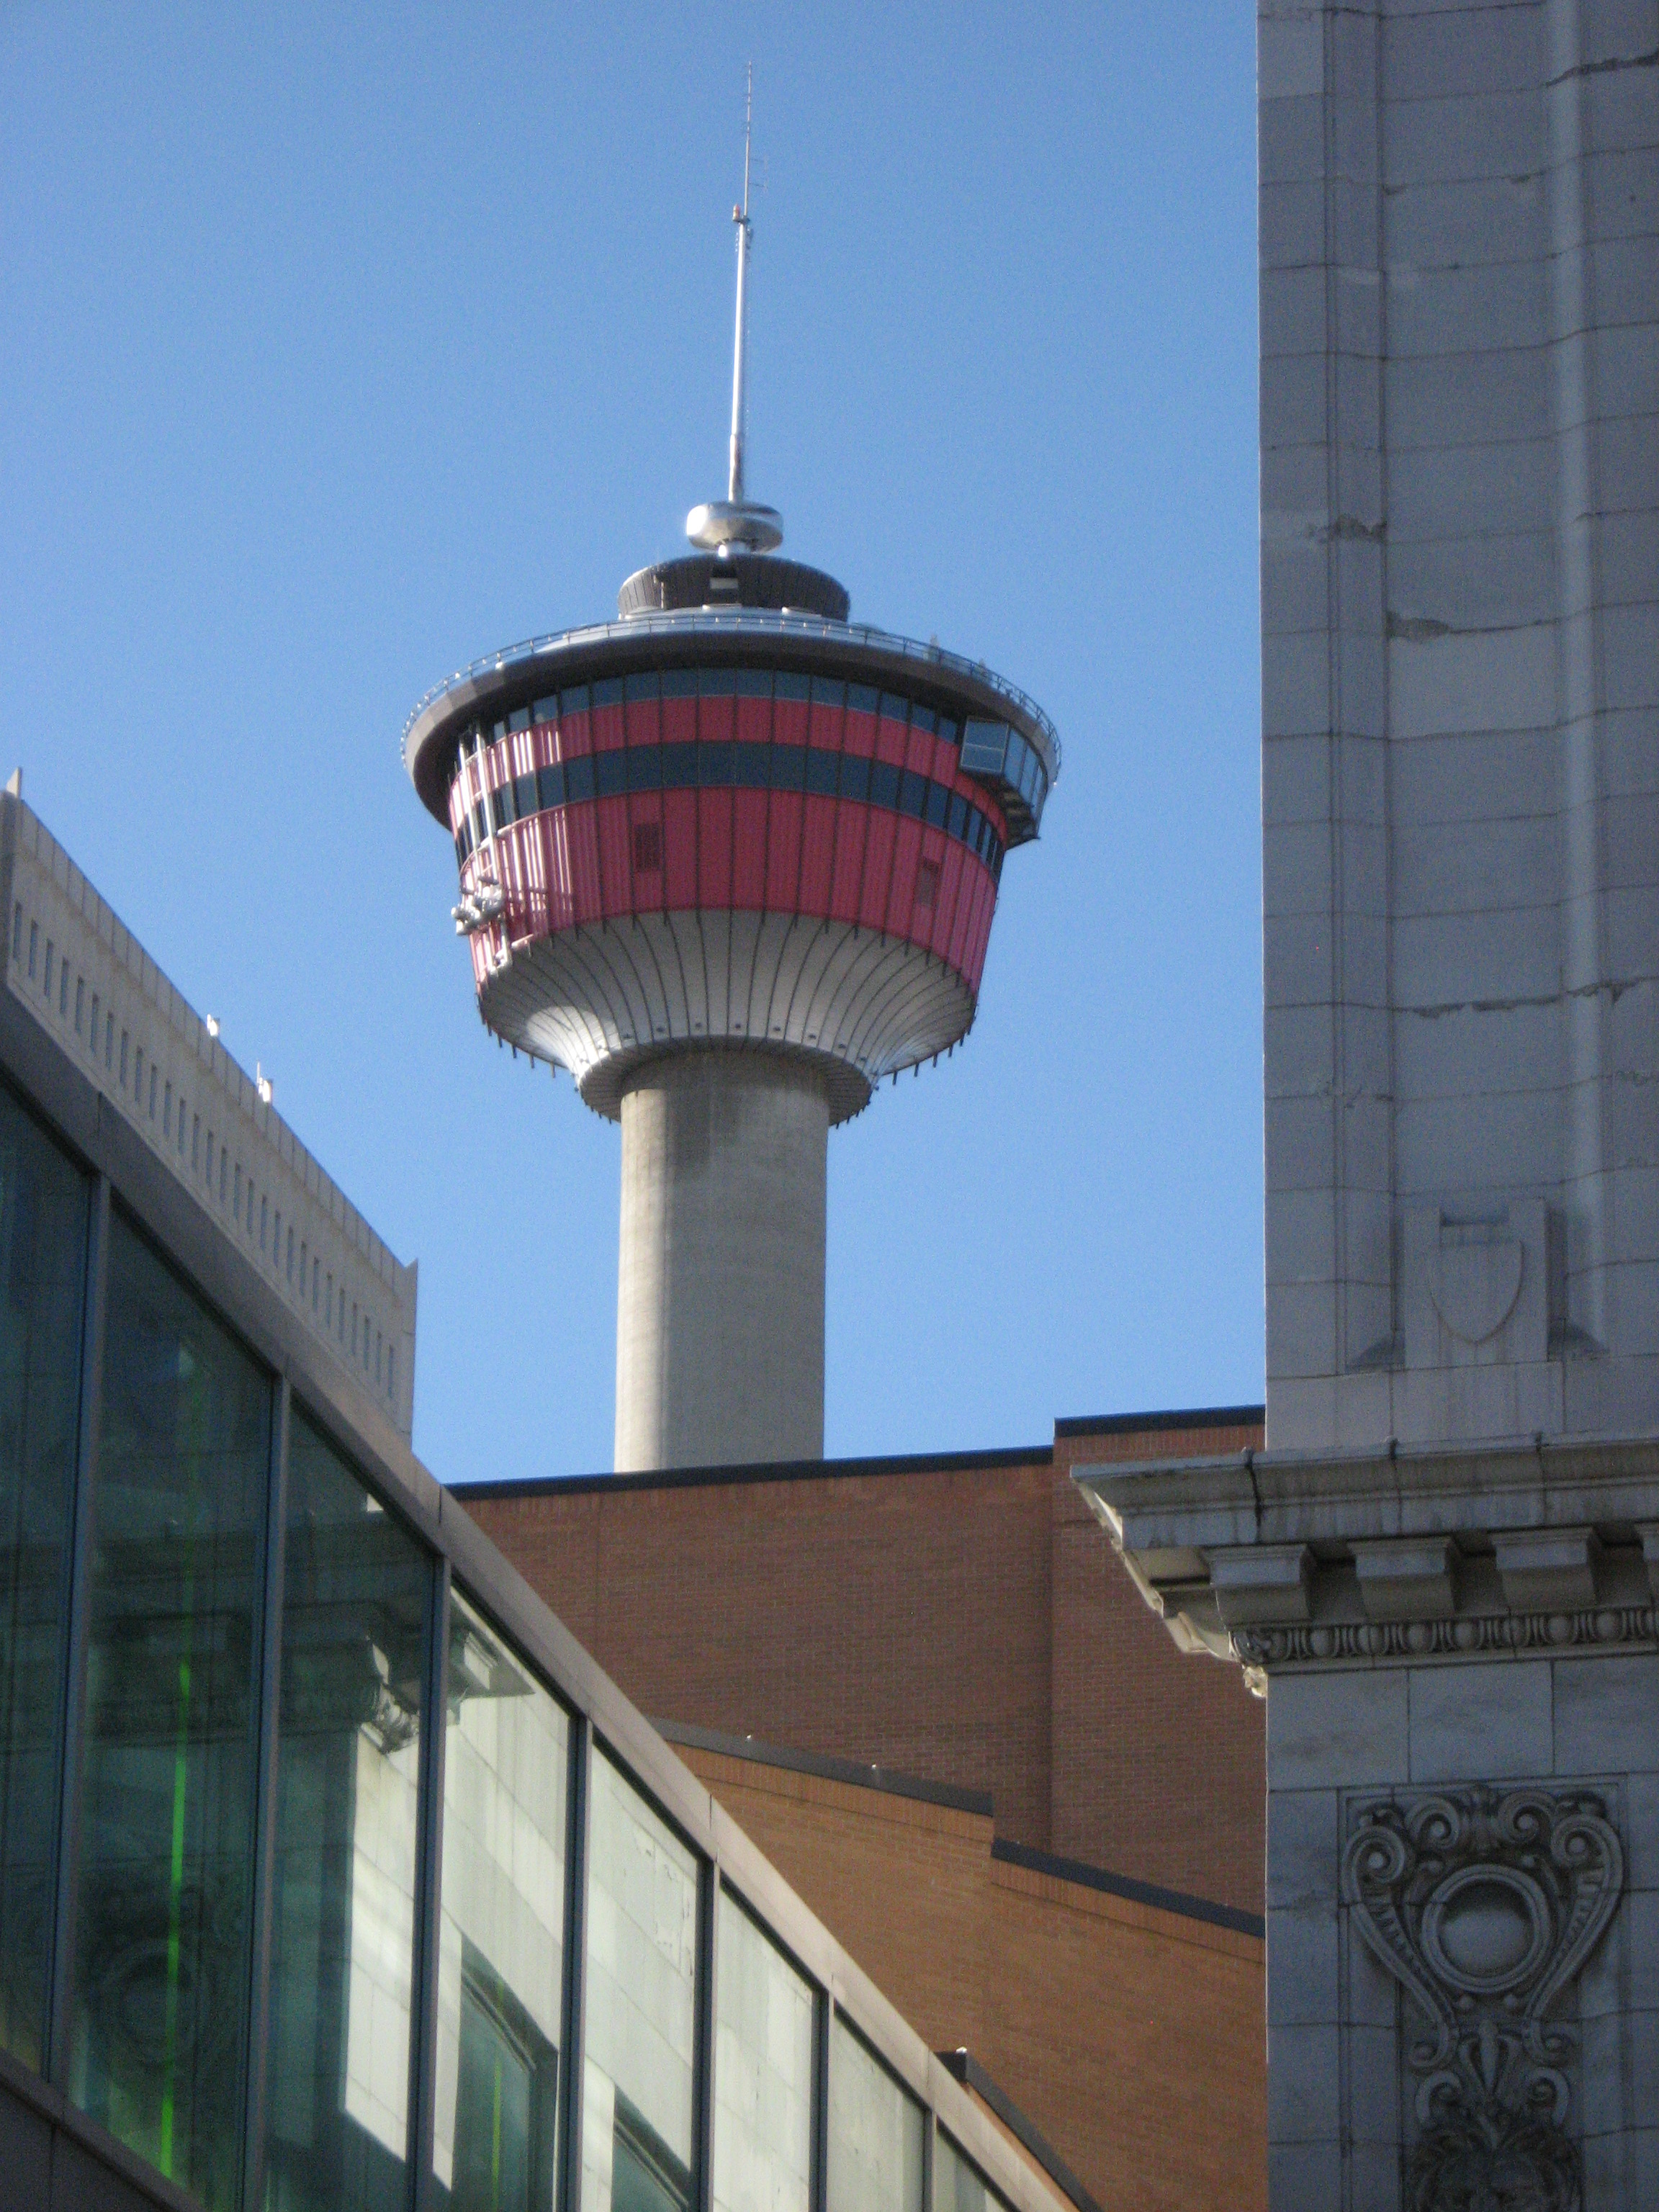 The Calgary Tower no longer dominates the skyline. more often than not it looks more like a UFO amongst the numerous office towers.